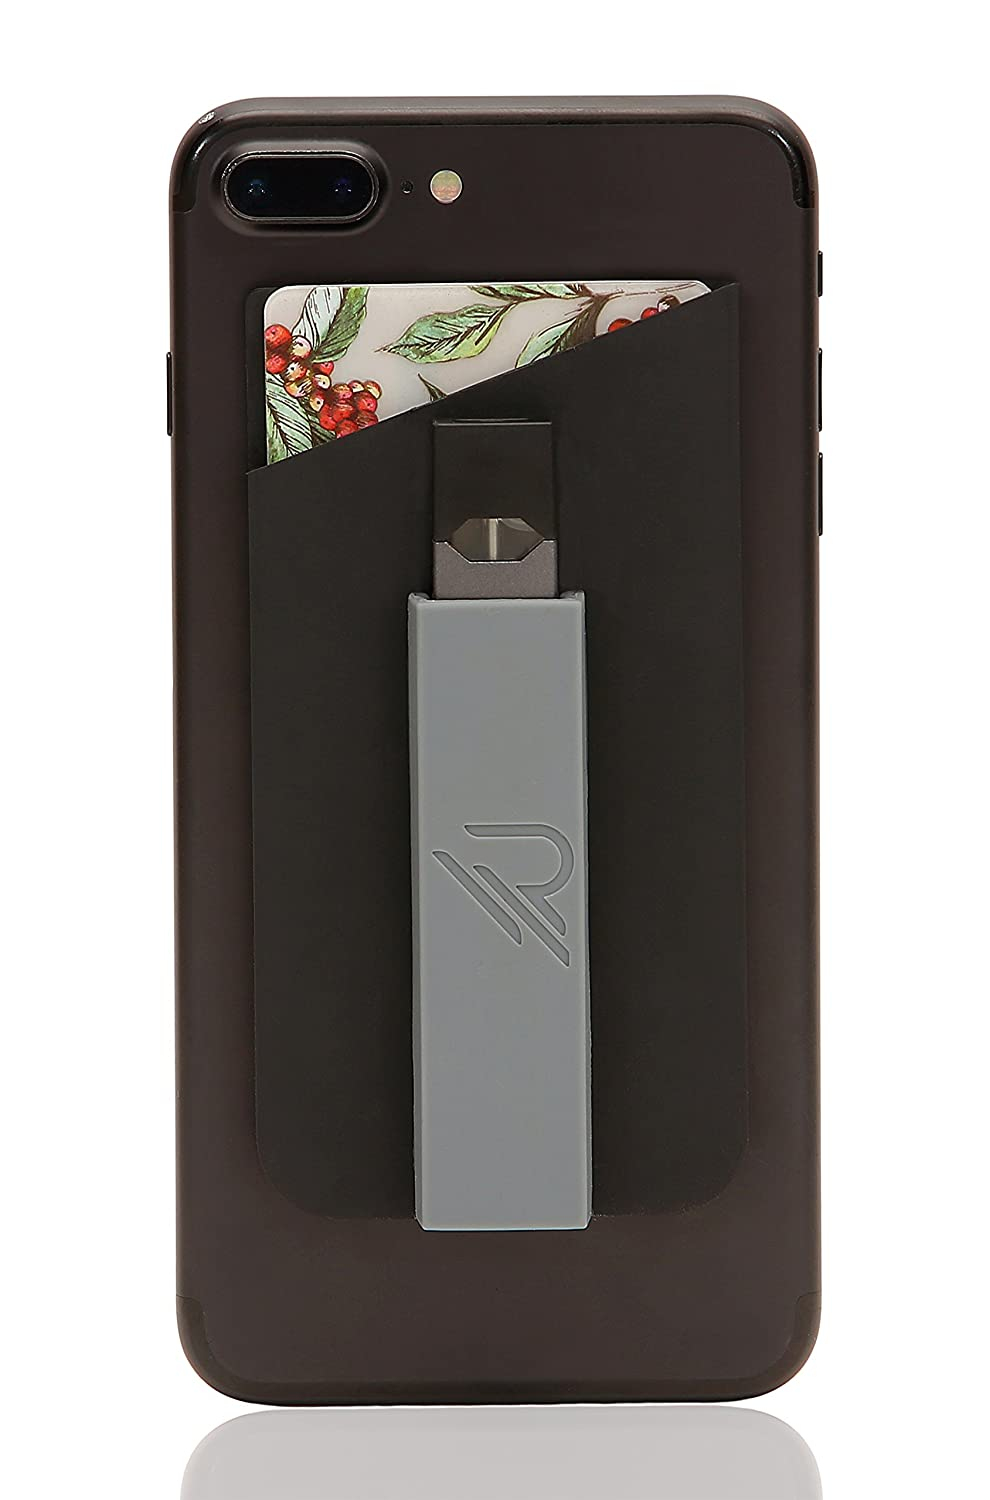 RipGrip (Jet Black, 1 Unit) Premium JUUL Holder